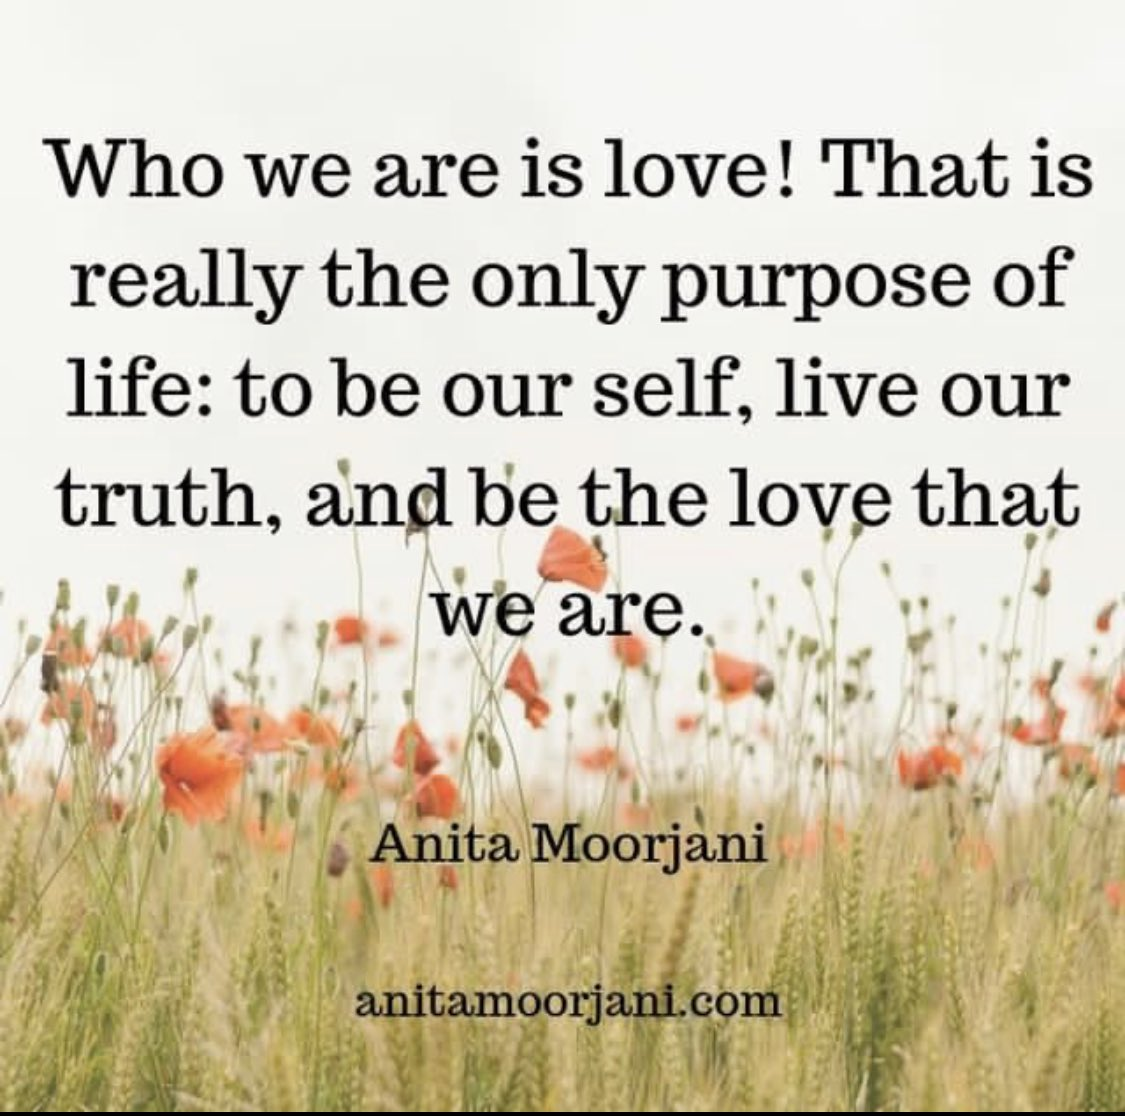 Love - theme of the day 🥰😊 ty @AnitaMoorjani ❤️🤗 #love #Truth  @MyMissionSucces